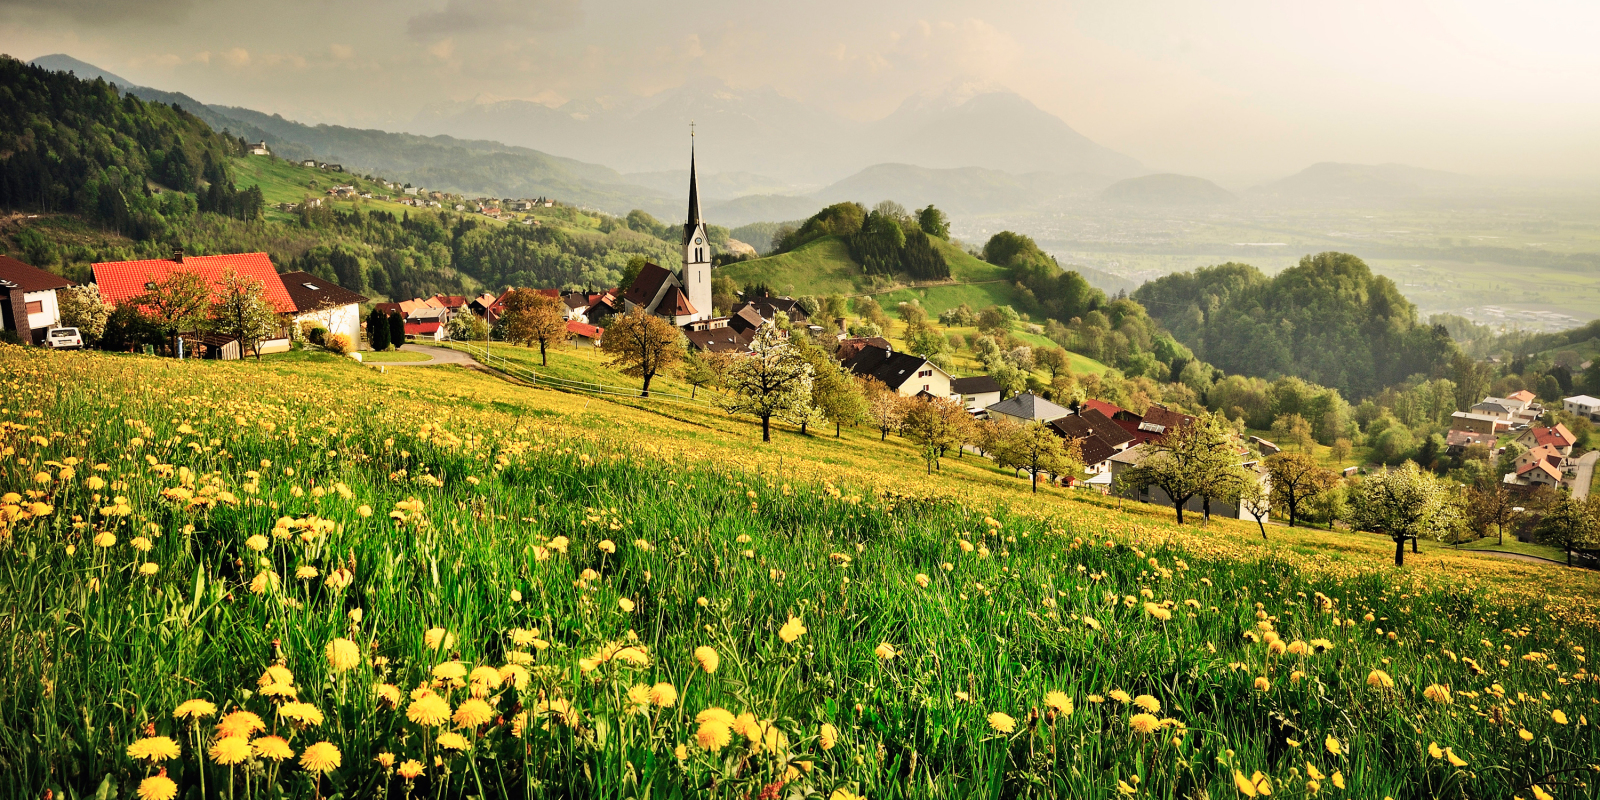 15 Photos That Perfectly Capture Austrias Stunning Countryside